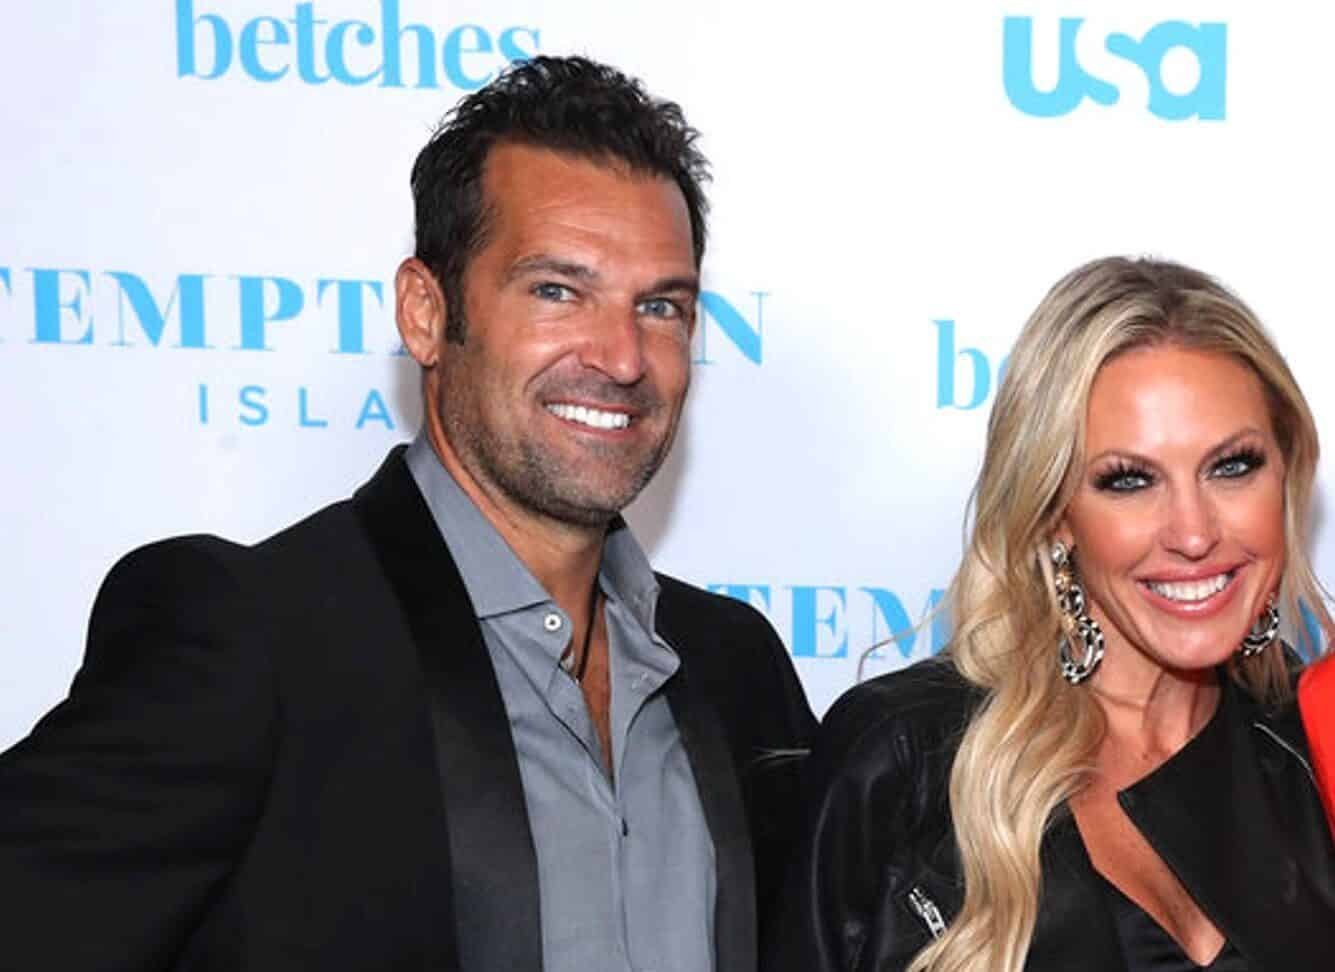 Braunwyn Windham-Burke and Husband Sean Face Eviction Over $45,000 Unpaid Rent on $6.7 Million Newport Beach Mansion, RHOC Stars Sued by Landlord